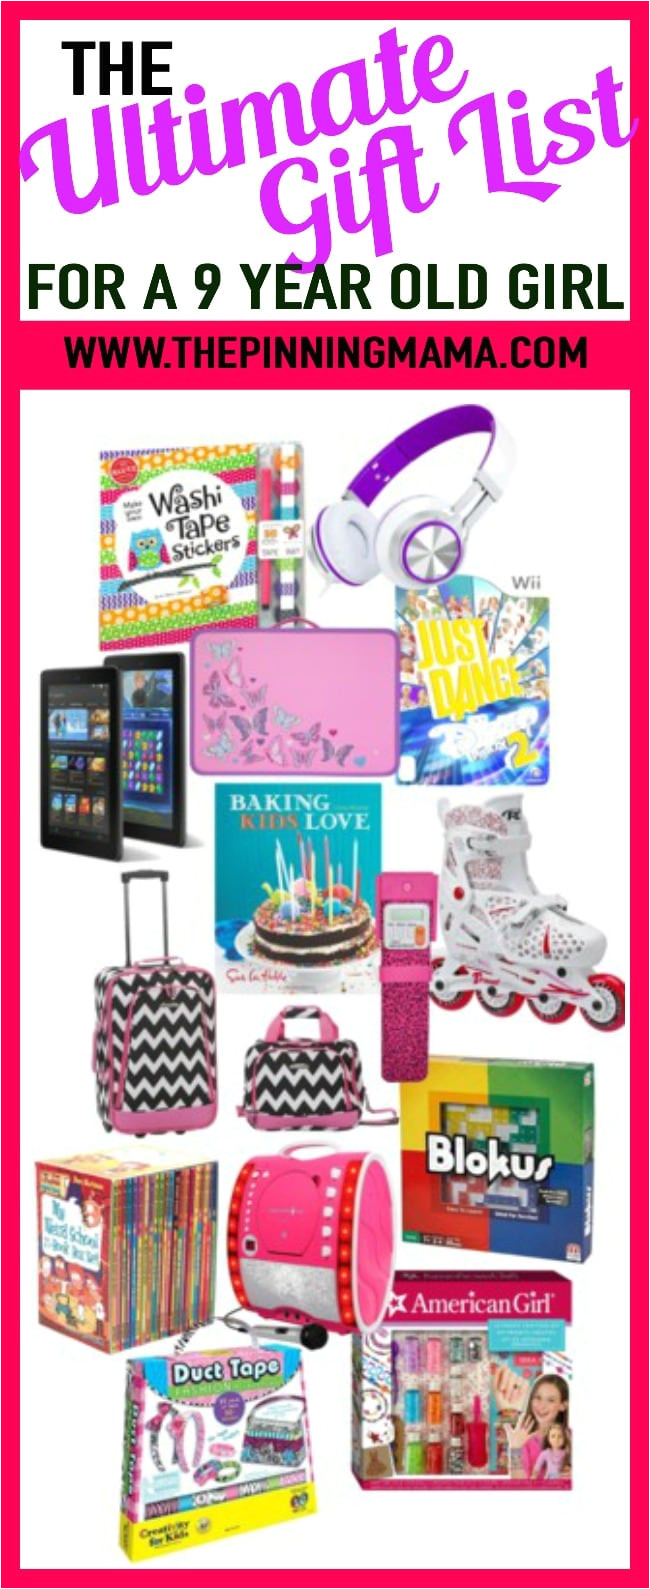 the best gift ideas for a 9 year old girl includes ideas for games